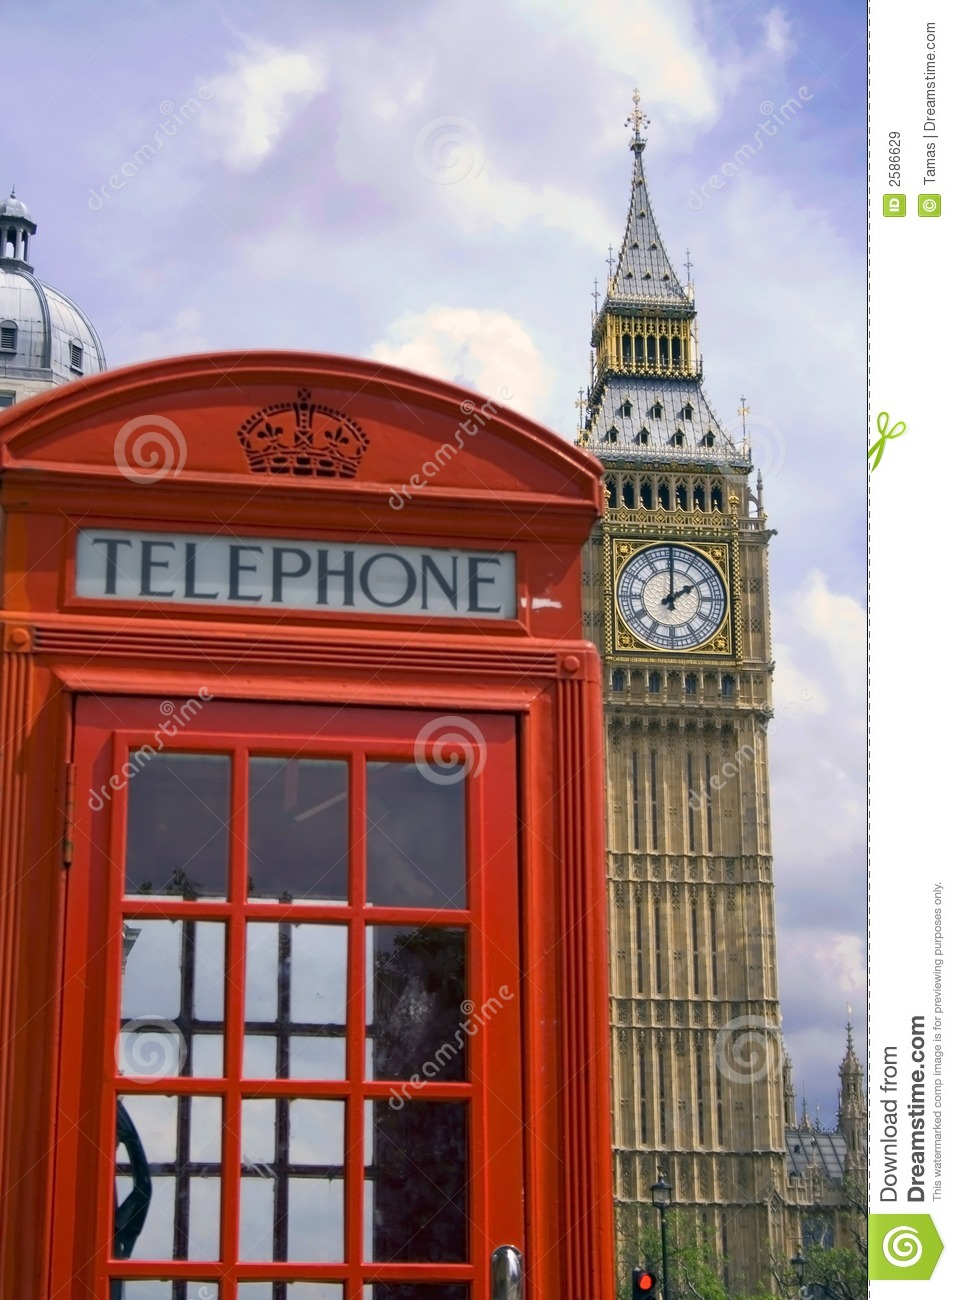 London Phone Booth/Big Ben Royalty Free Stock Images - Image: 2586629 ...